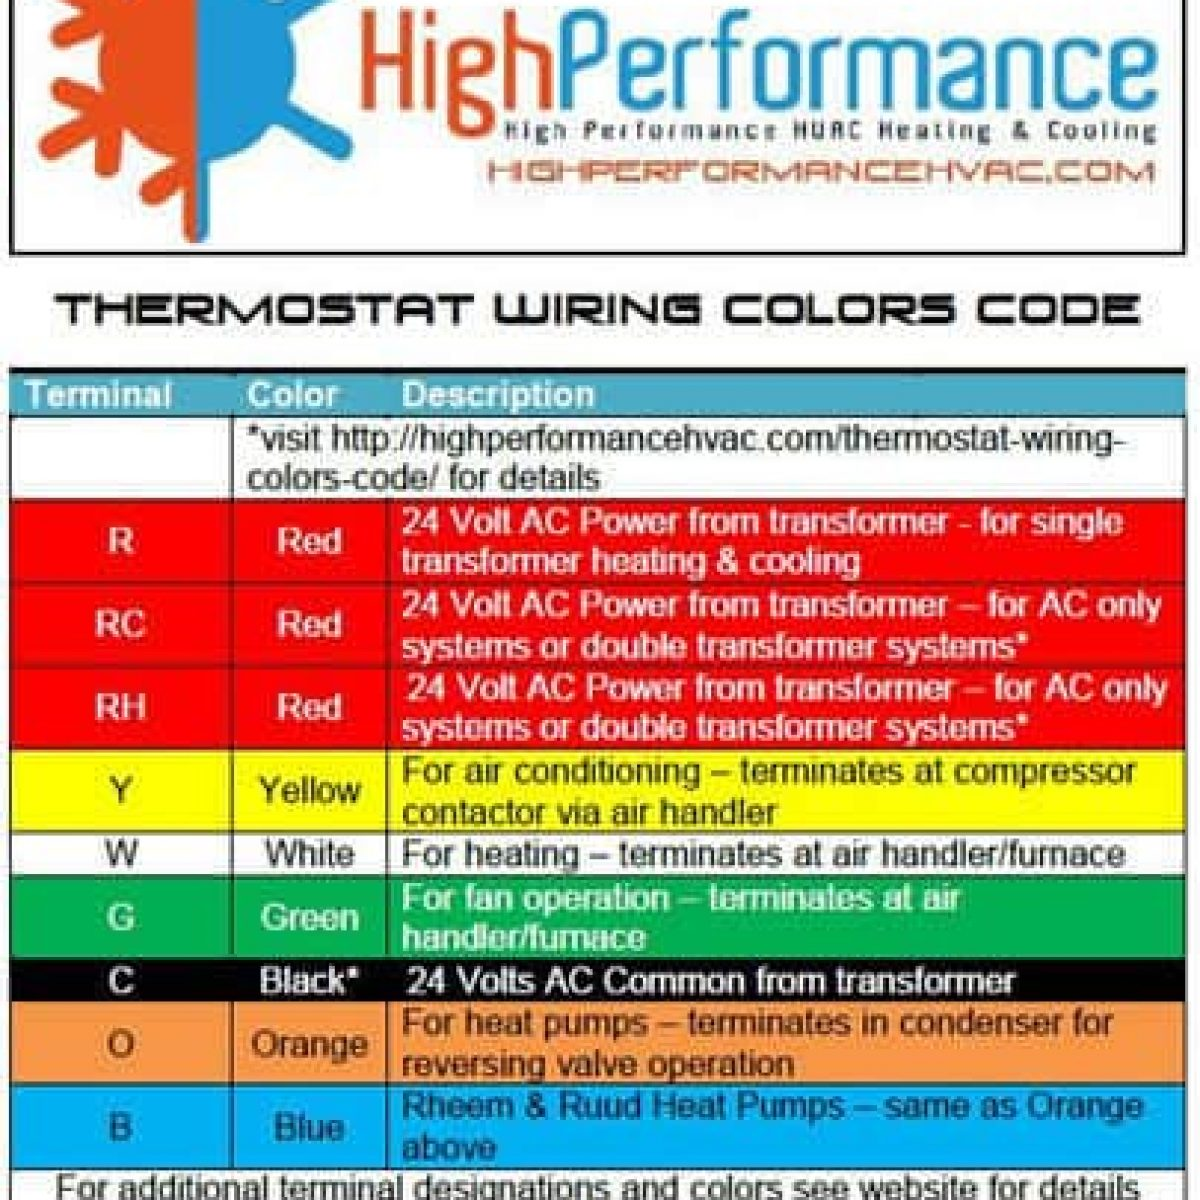 Hvac Wiring Colors | Wiring Diagram on connectors color codes, alternating current, electricity color codes, electric power transmission, electrical engineering, electrical conduit, pike color codes, ground and neutral, wiring diagram, design color codes, resistors color codes, plug color codes, audio color codes, earthing system, circuit breaker, power supply color codes, electrical wire color codes, fuse color codes, pygame color codes, electric motor, engineering color codes, extension cord, power cable, three-phase electric power, junction box, dart color codes, cabling color codes, national electrical code, assembly color codes, distribution board, wood color codes, tubing color codes, computer color codes, home wiring, painting color codes, knob and tube wiring,